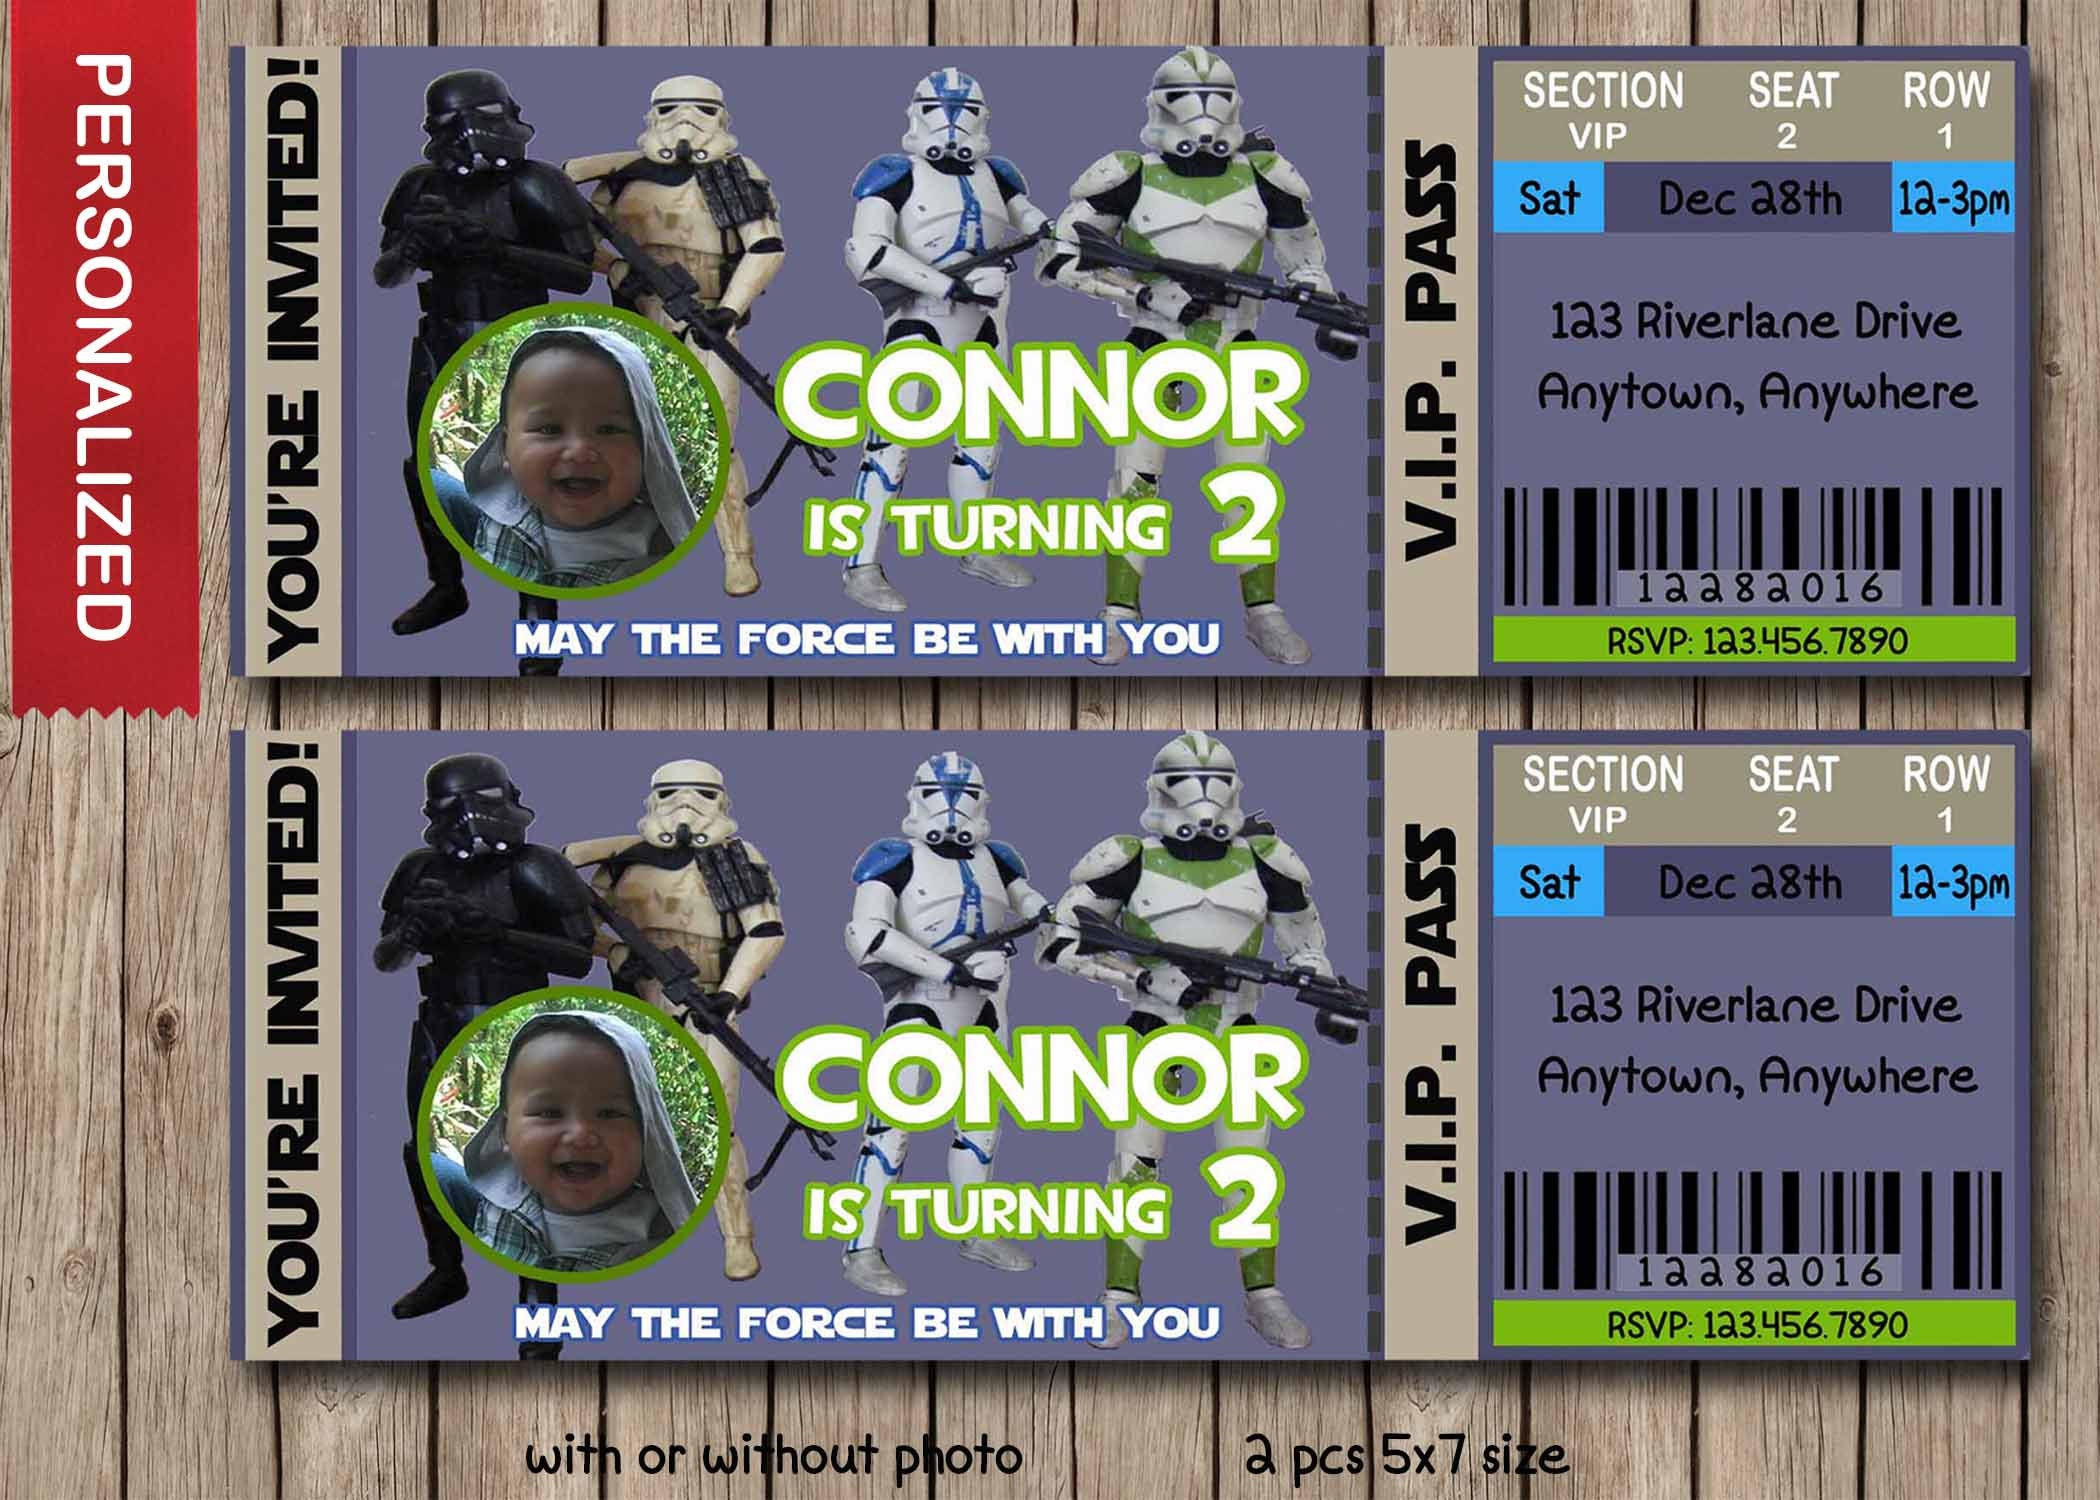 Star Wars Storm Trooper Birthday Invite Star Wars Birthday - Star wars birthday invitation diy